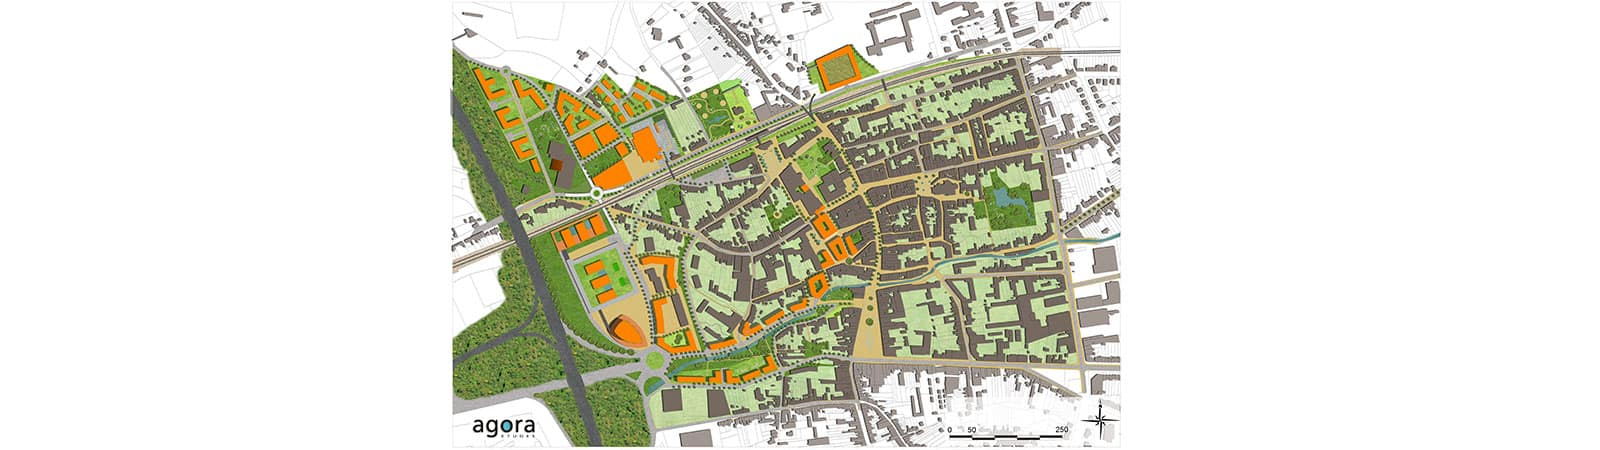 Plan <strong>Wavre 2030</strong> - Wavre 2030